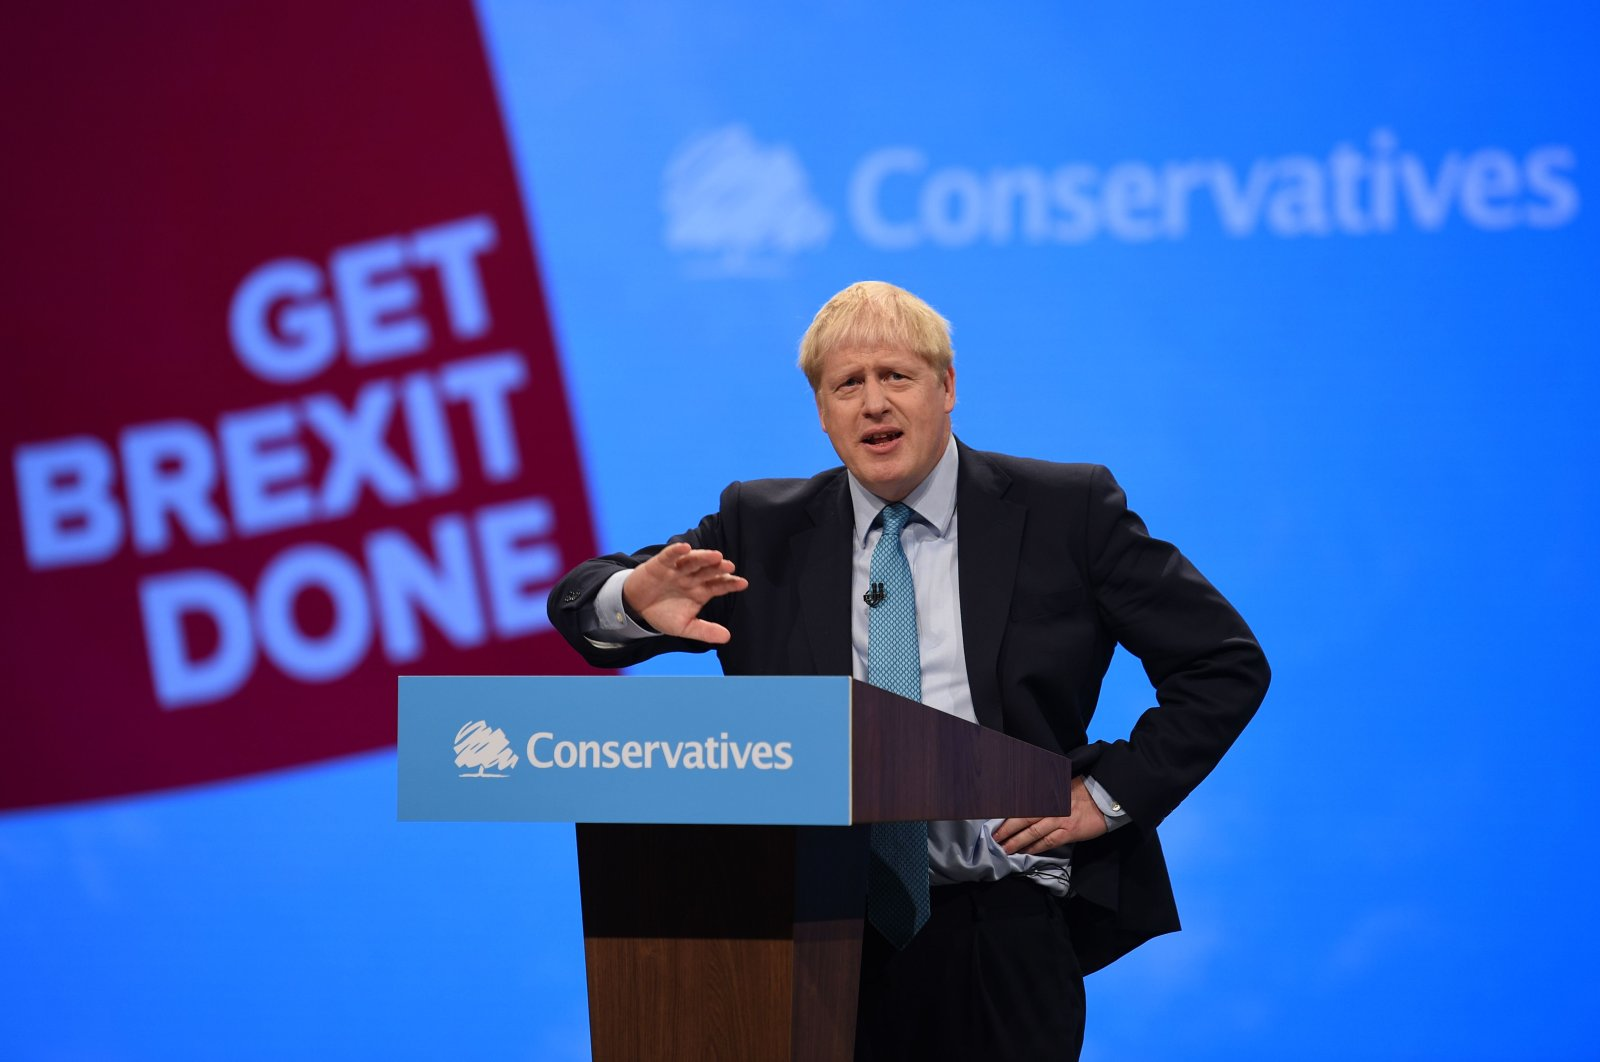 Britain's Prime Minister Boris Johnson delivers his keynote speech to delegates on the final day of the annual Conservative Party conference at the Manchester Central convention complex, Manchester, Oct. 2, 2019. (AFP Photo)